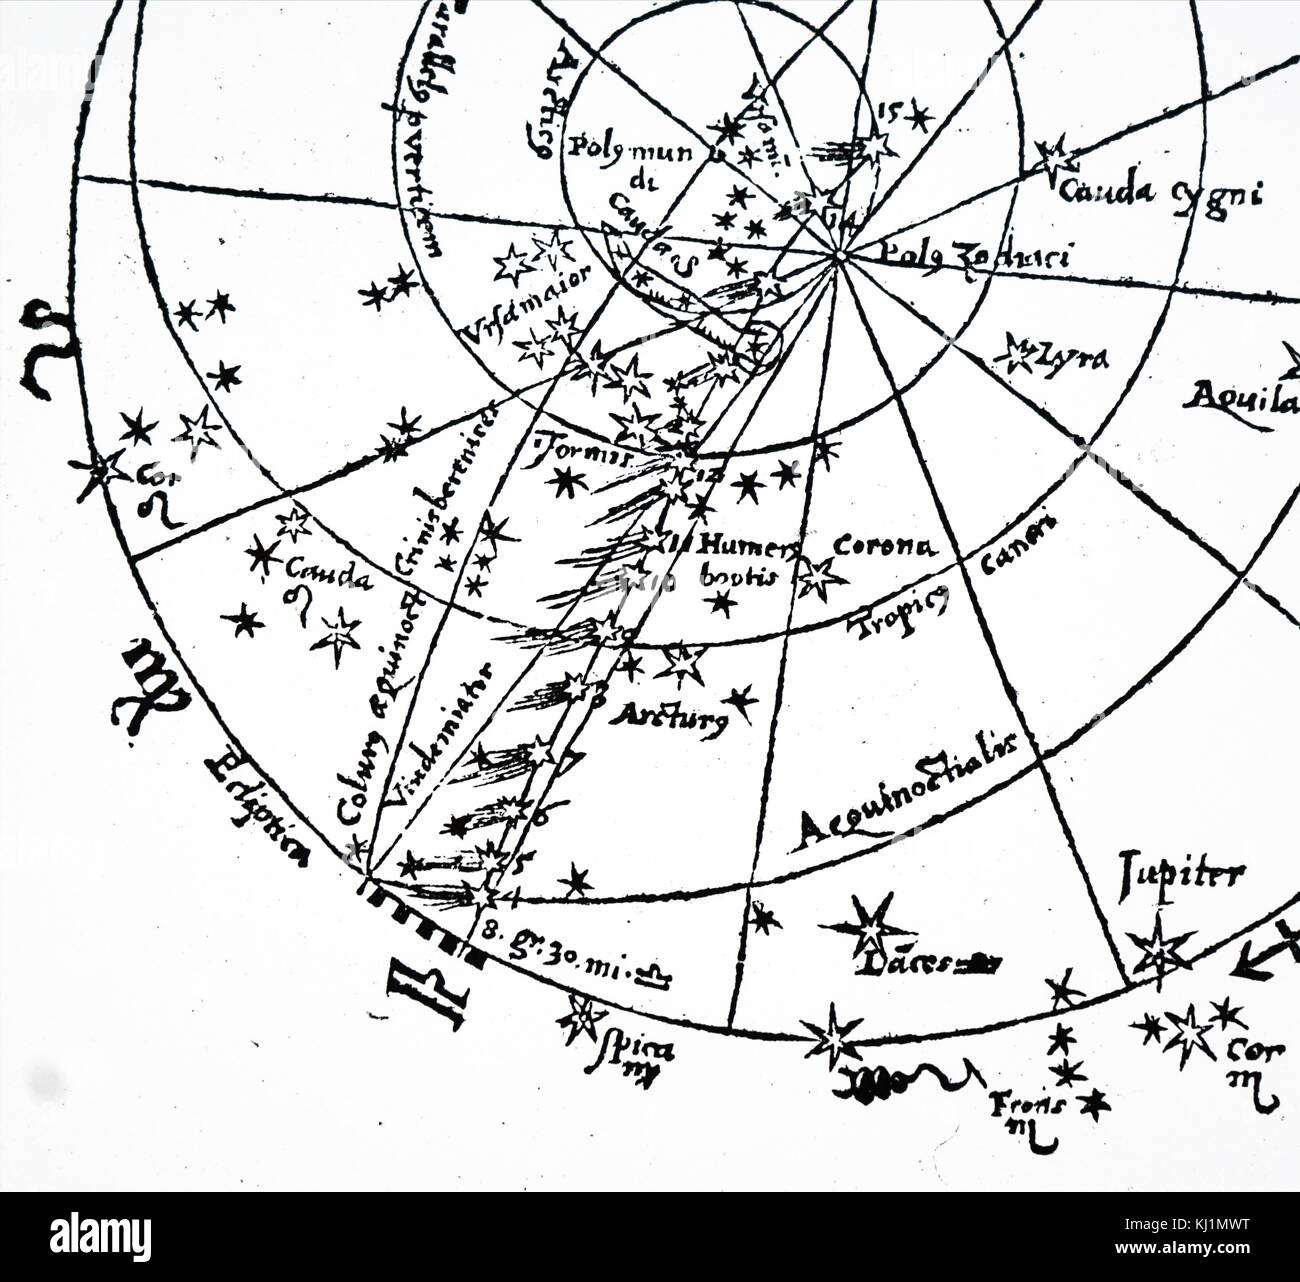 Diagram of the planets stock photos diagram of the planets stock diagram depicting tycho brahes planetary system dated 16th century stock image ccuart Choice Image